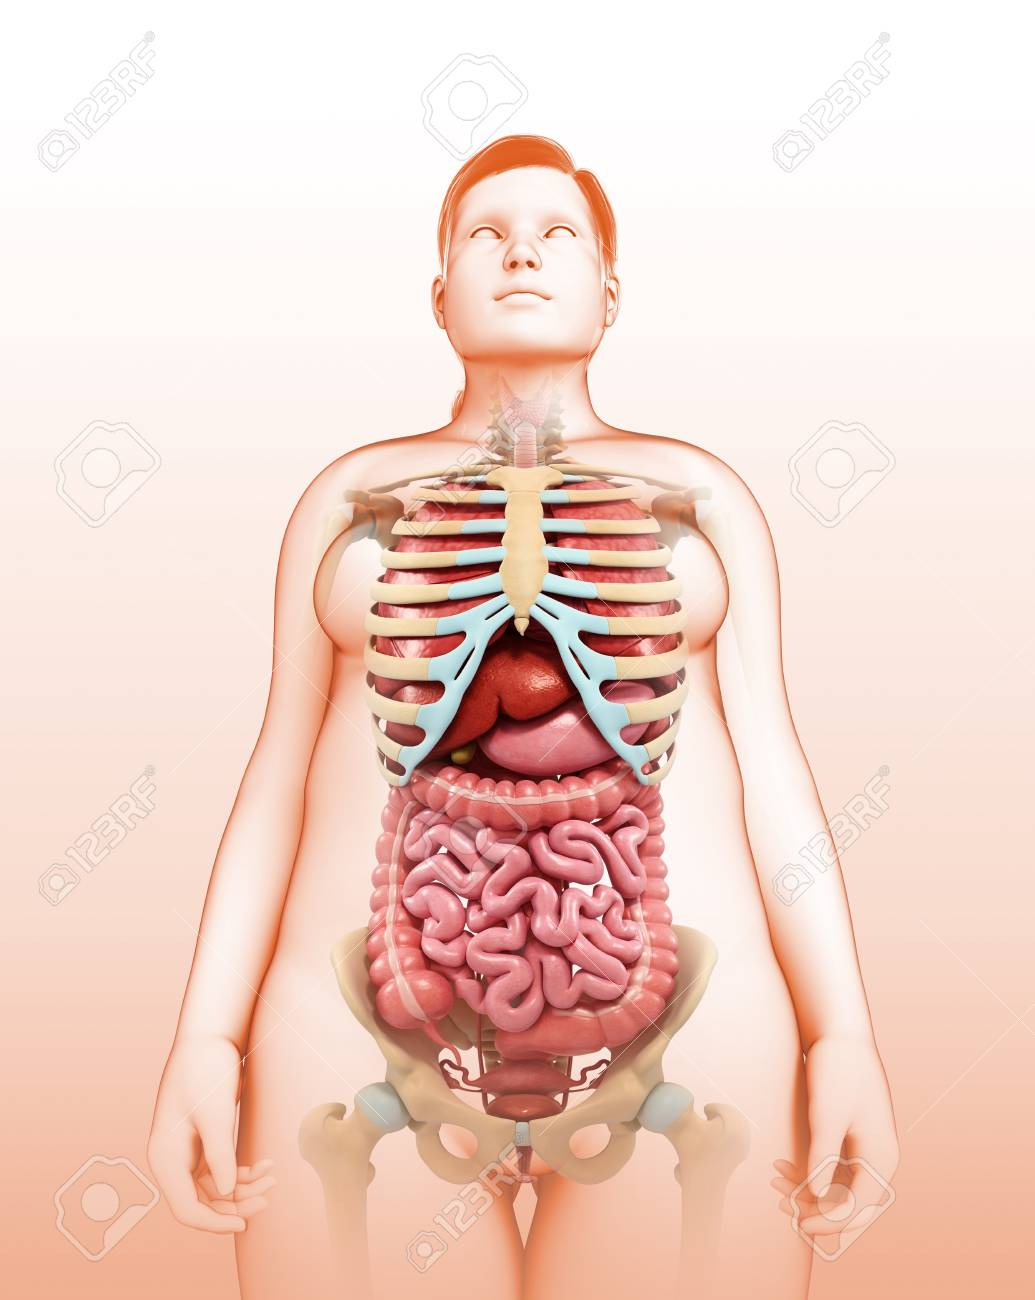 Human Internal Organs Illustration Stock Photo Picture And Royalty